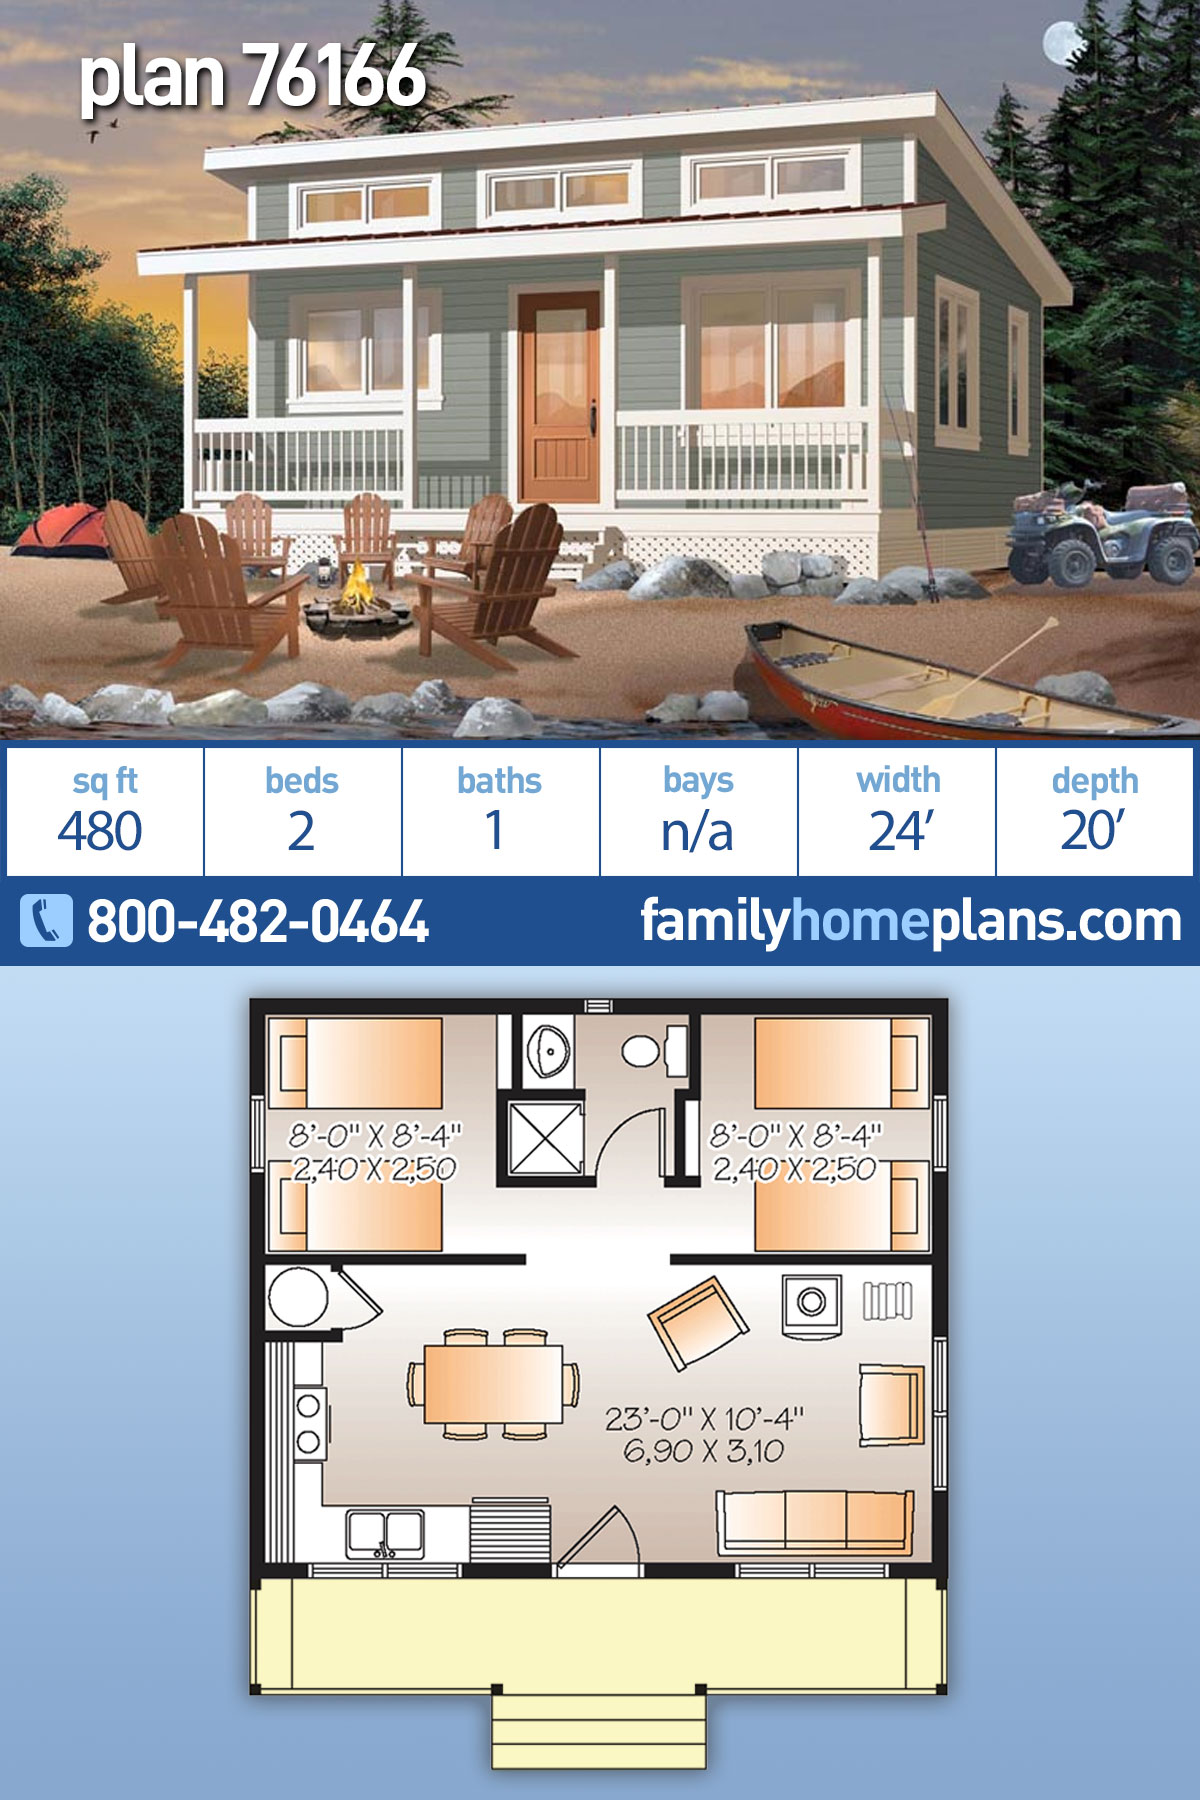 Cabin House Plan 76166 with 2 Beds, 1 Baths